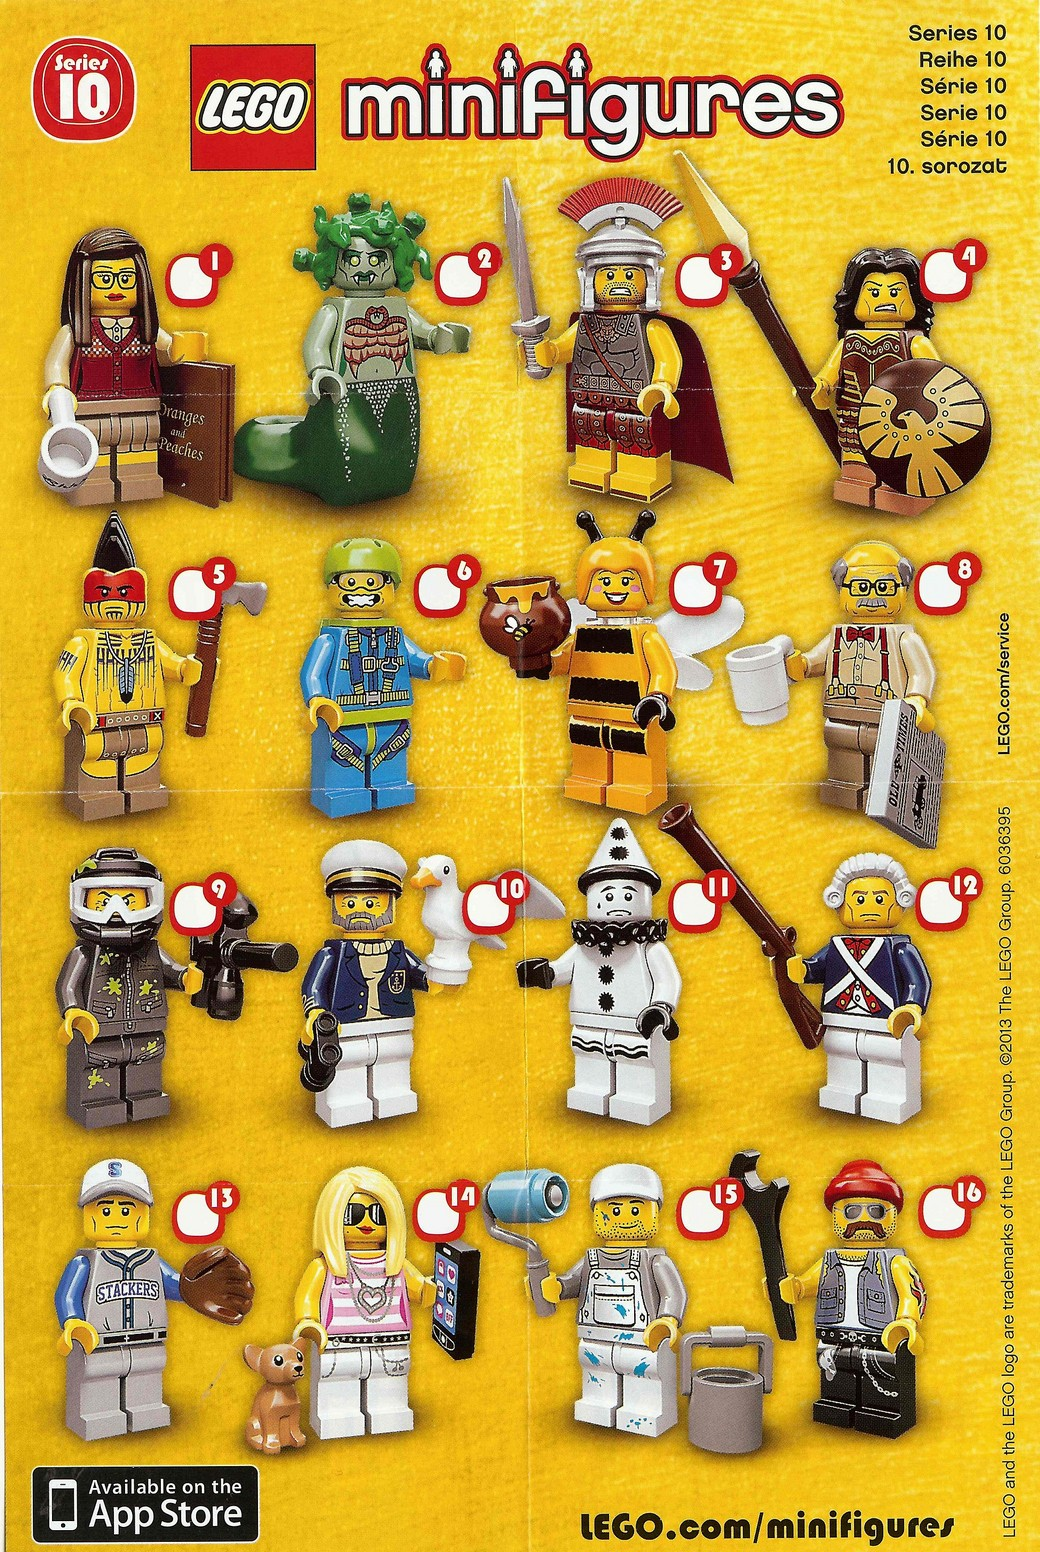 Posted in LEGO News Tagged LEGO Collectable Minifigures permalink